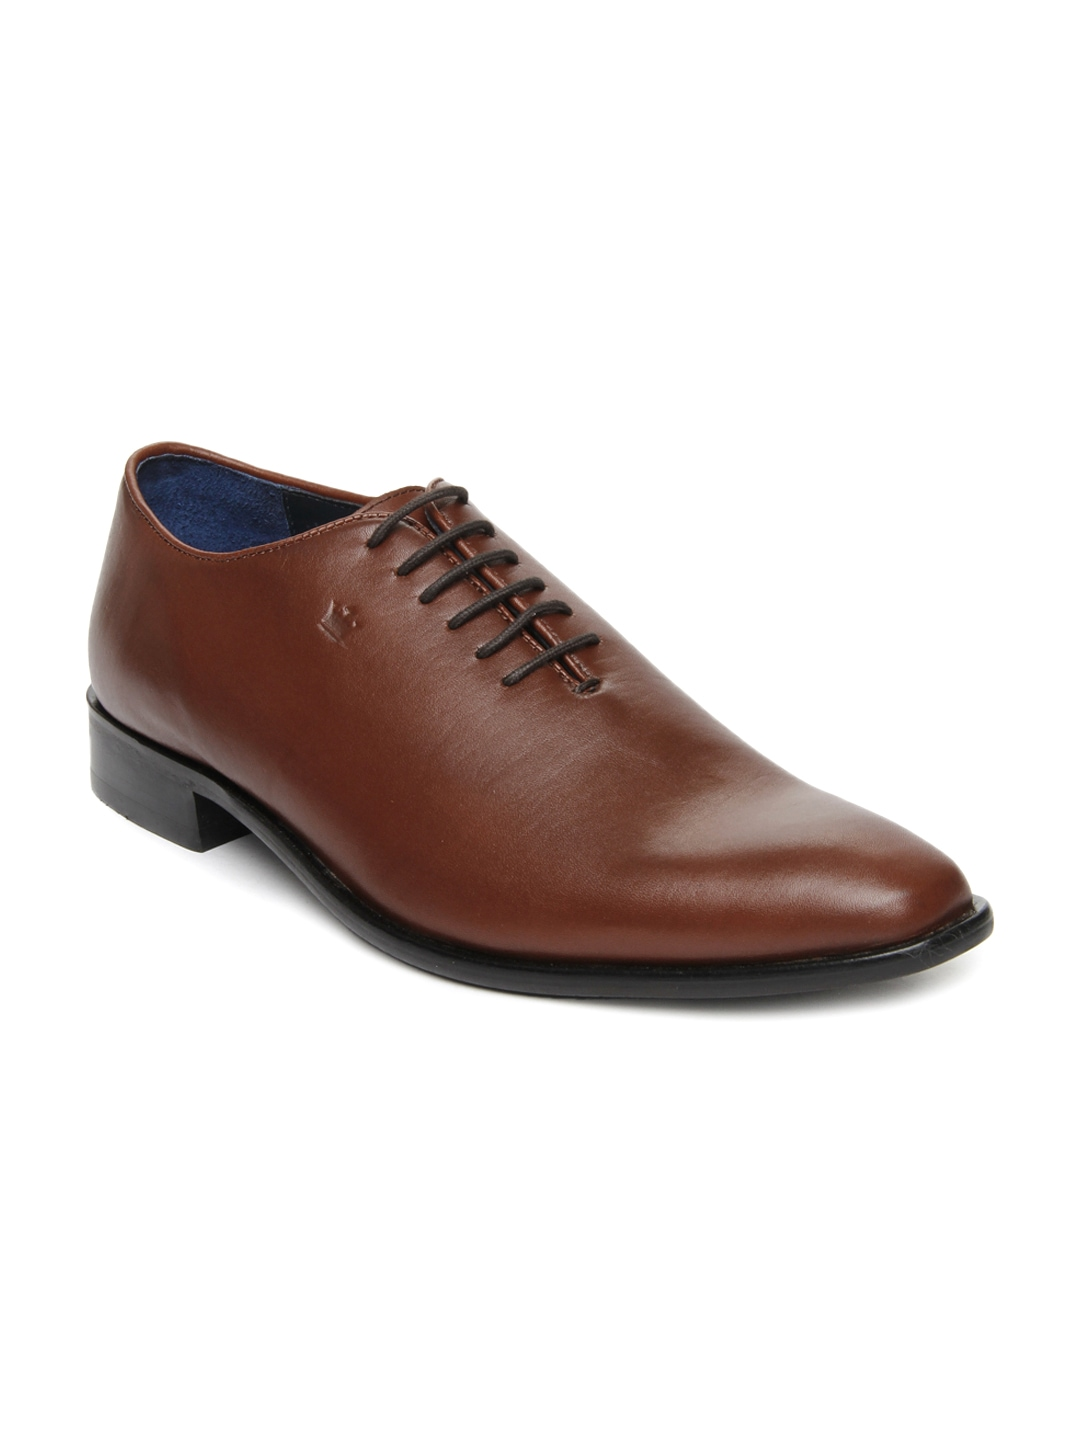 Louis Philippe Formal Shoes For Men